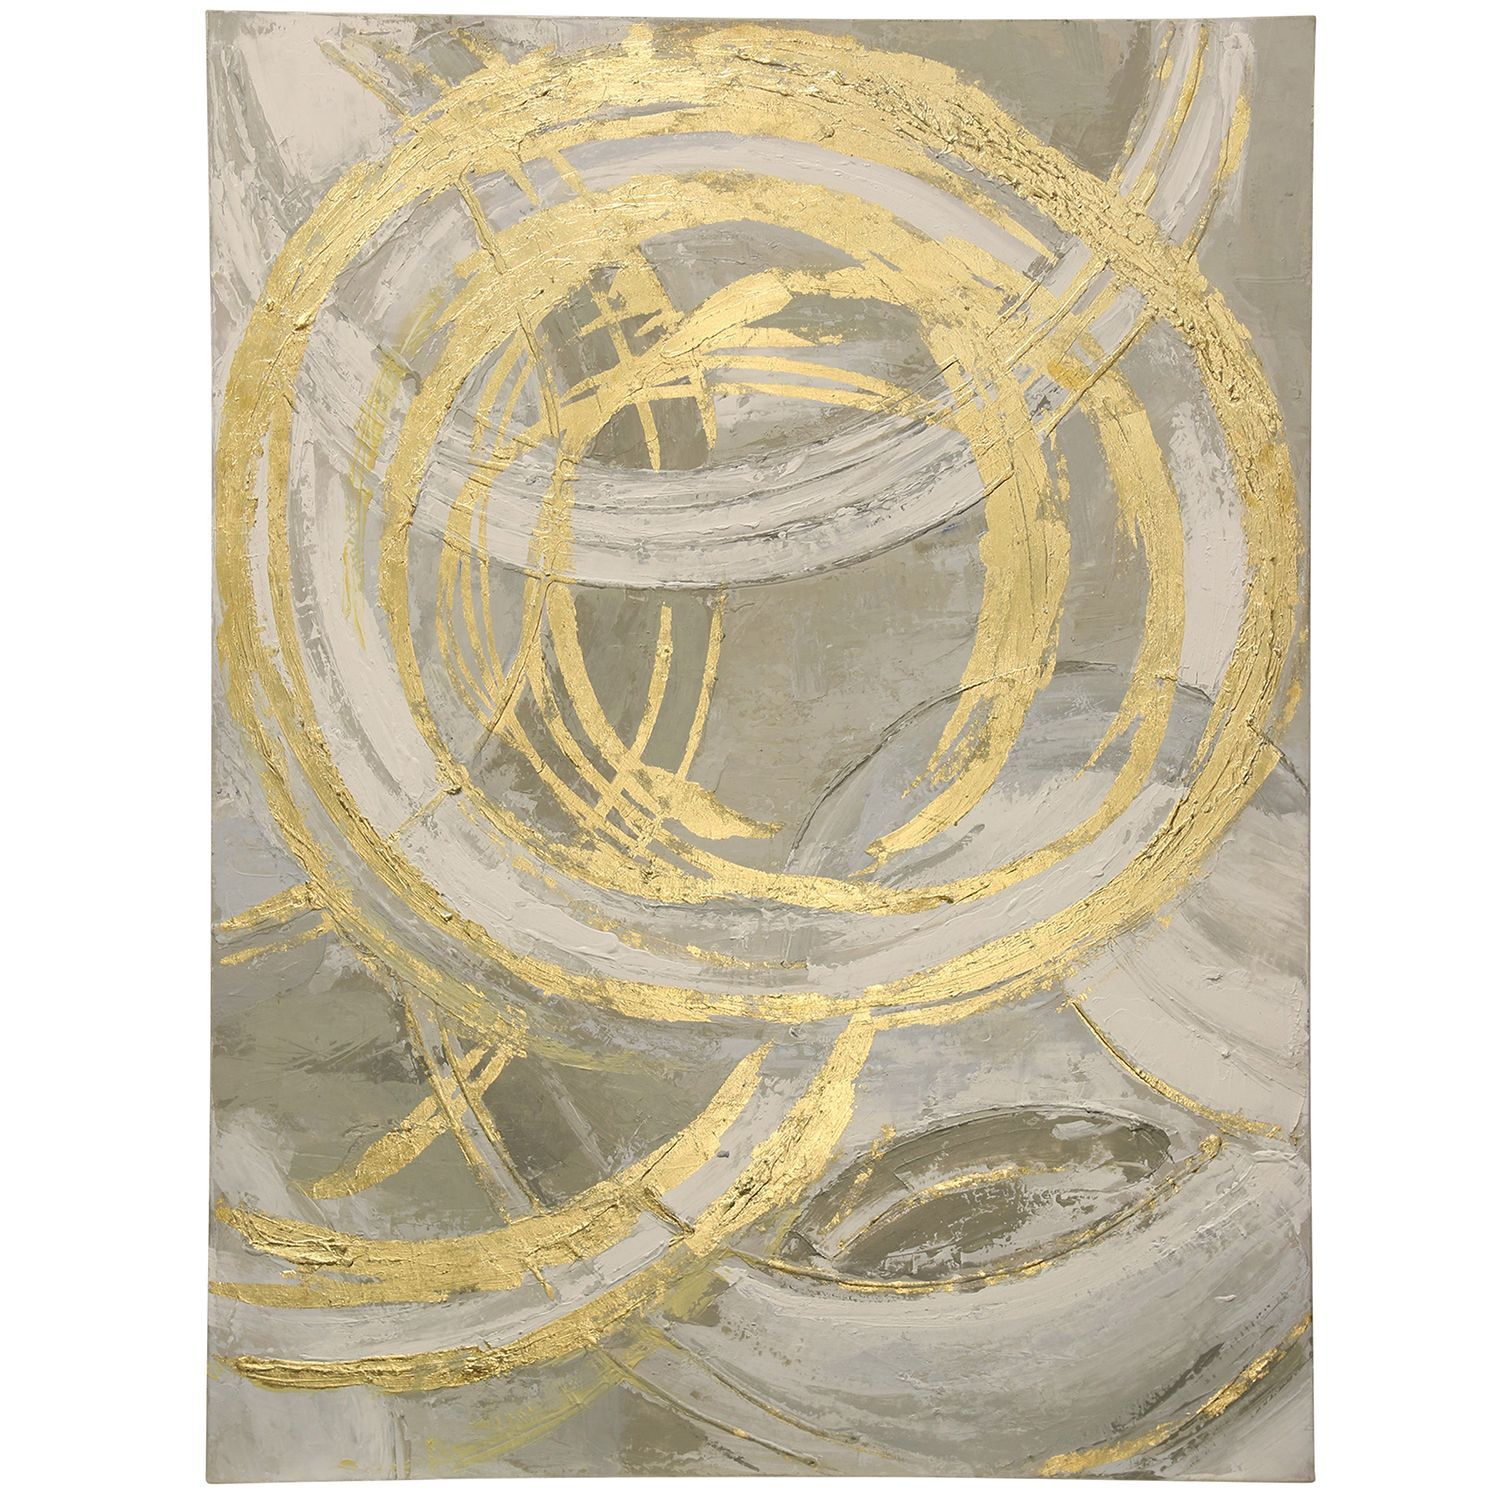 Hand Painted Gold Circles On Stretched Canvas | Canvases, Gold and ...